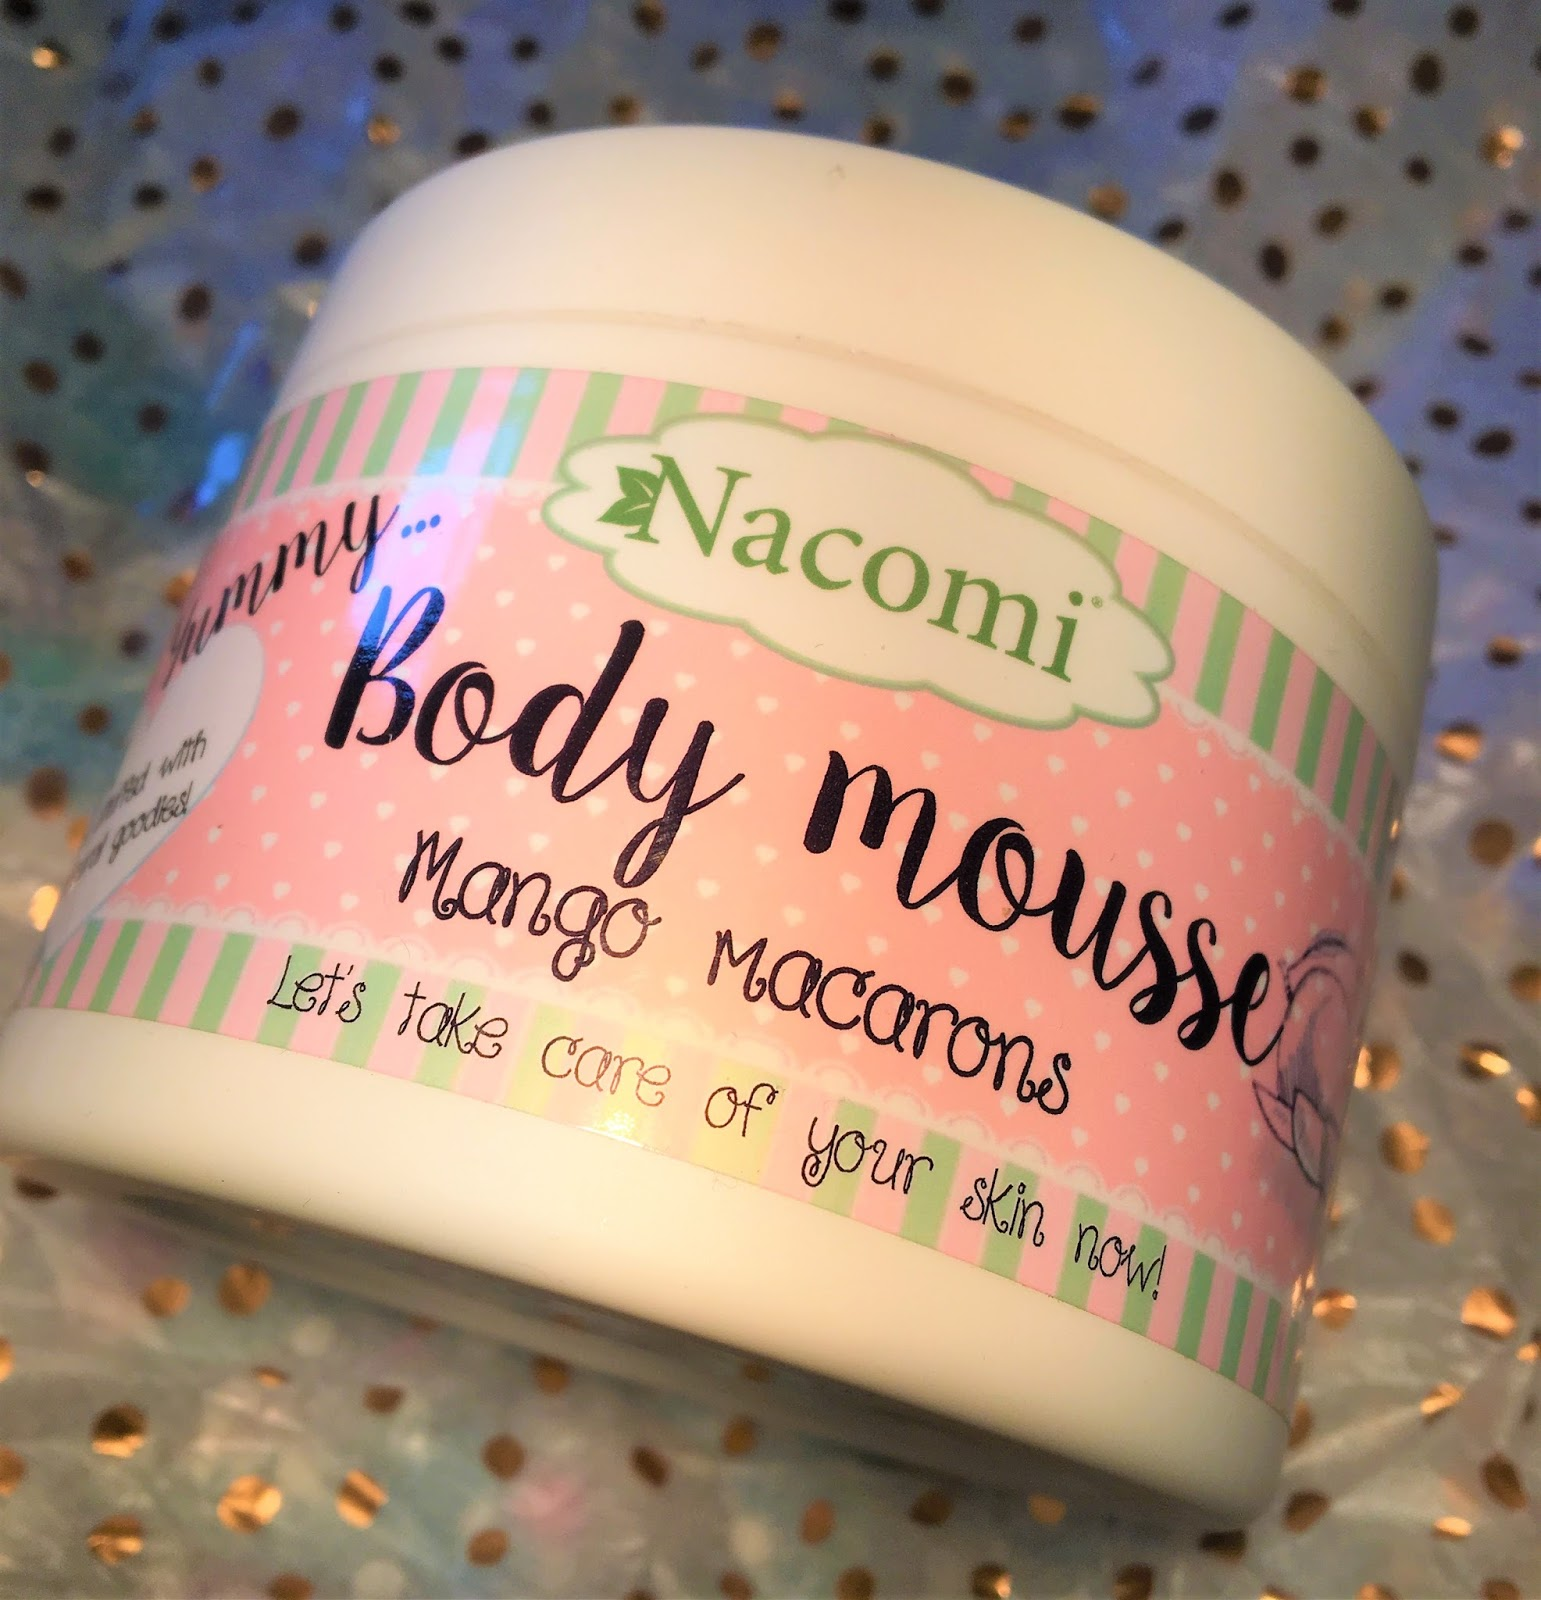 Nacomi UK Mango Macarons Body Mousse